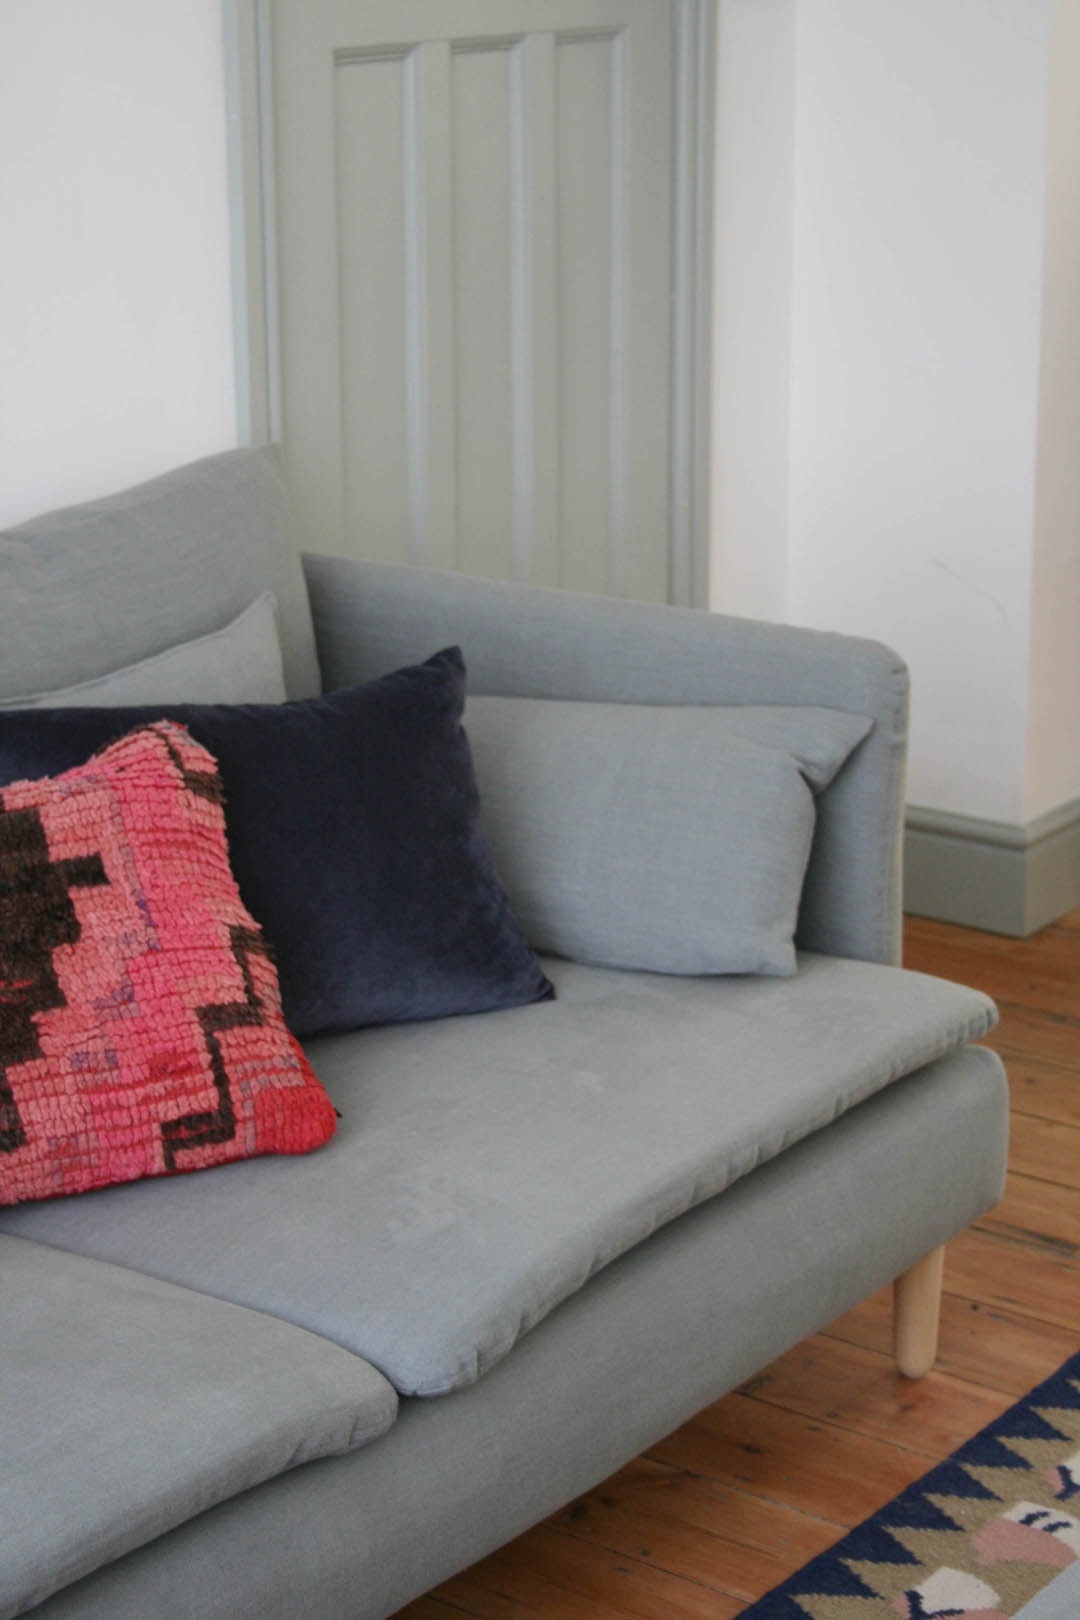 A new winter look for my sofas and 25% off for you